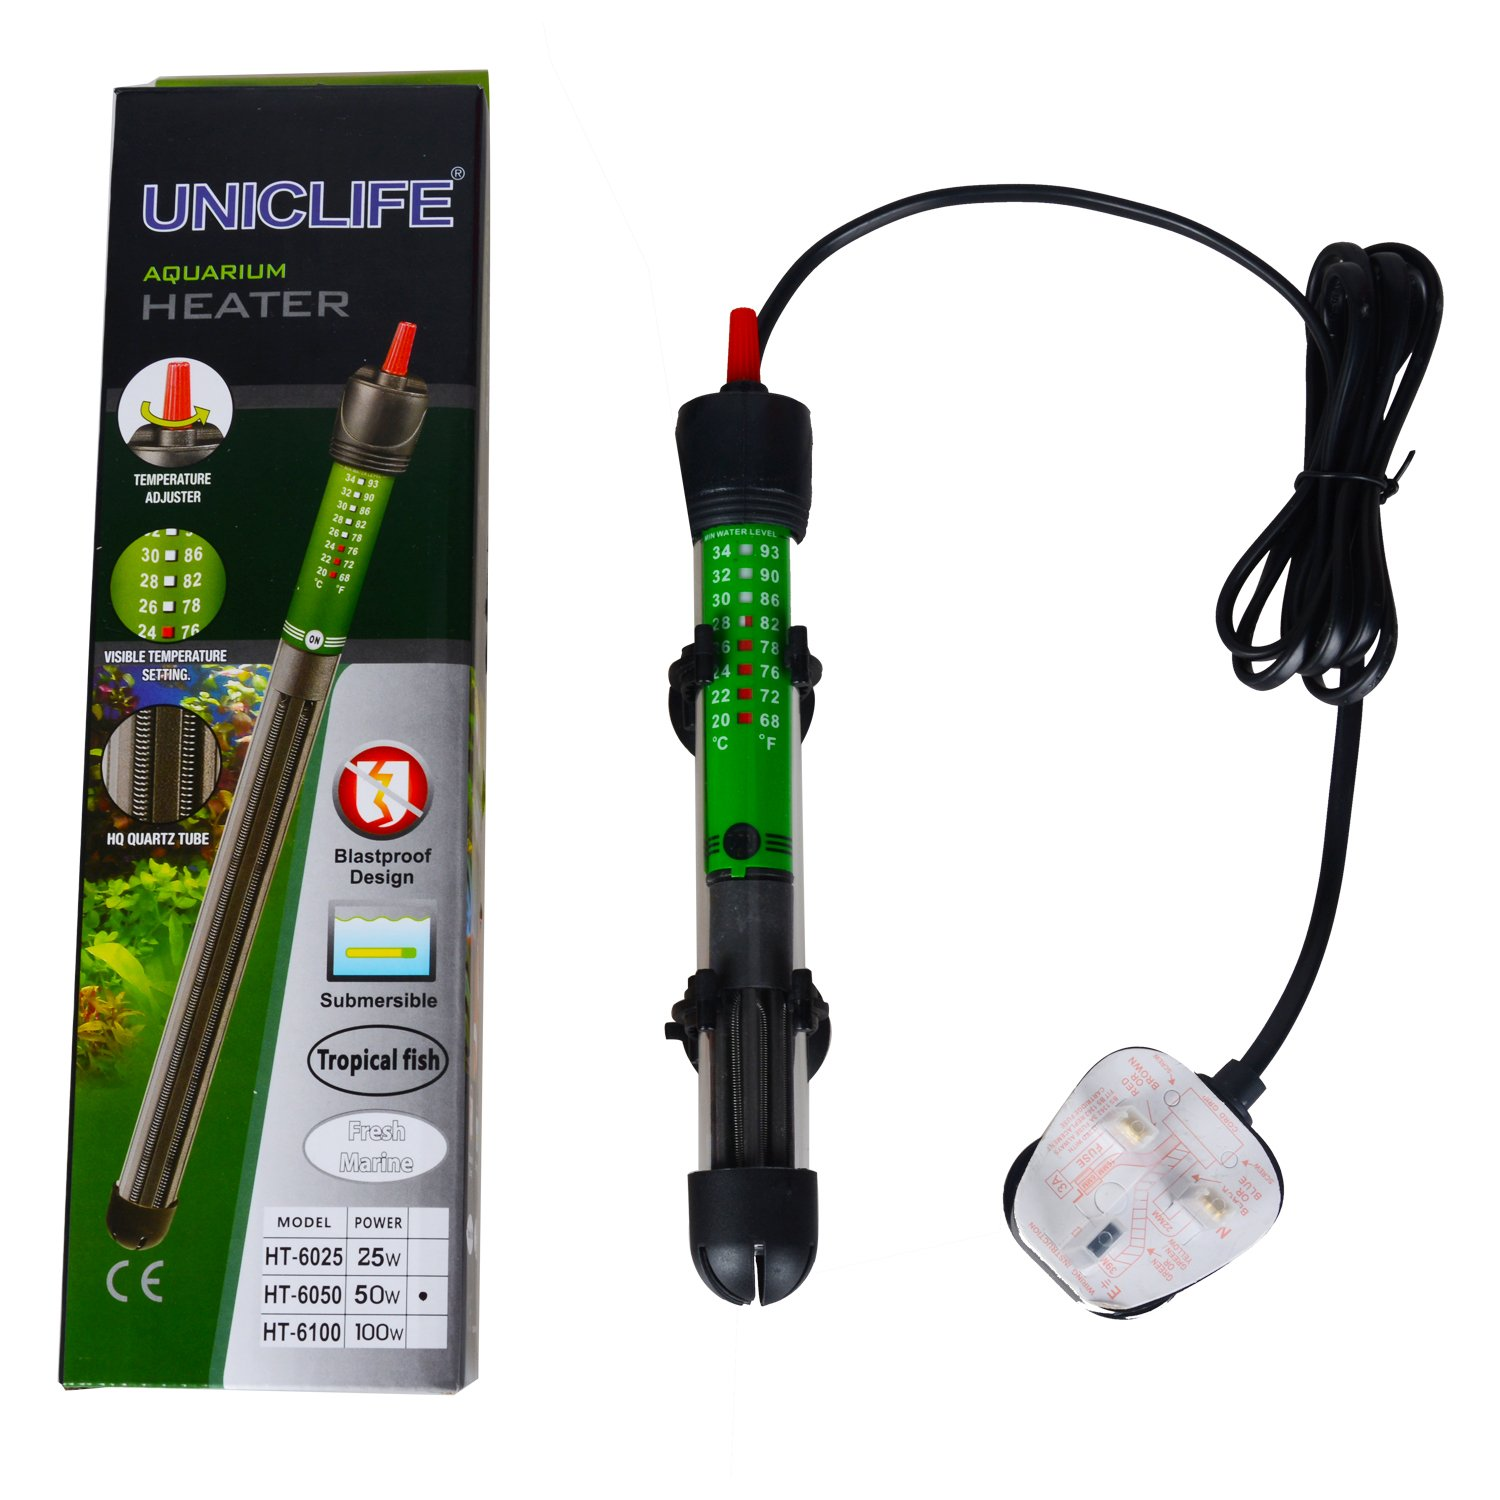 Pawfly HT-6050 Aquarium Heater Submersible with Thermometer for 10 Gallon Fish Tank 50 W